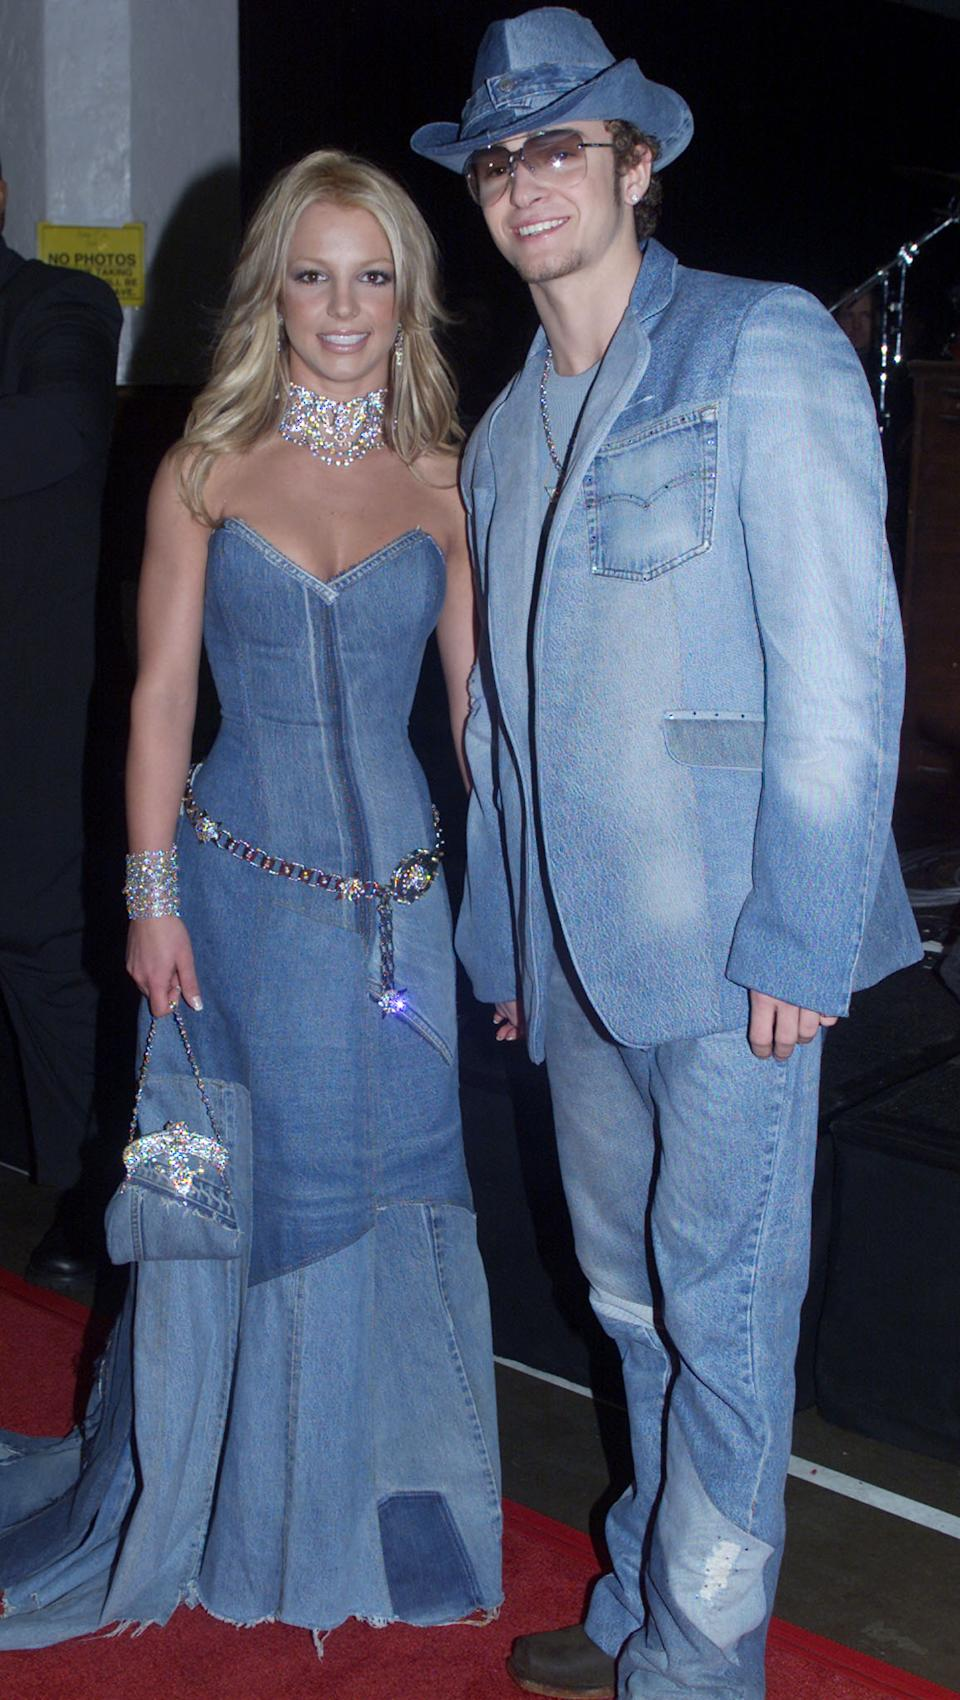 Singer Britney Spears and boyfriend Justin Timberlake of the group 'N Sync arrive at the 28th Annual American Music Awards January 8, 2001 at the Shrine Auditorium in Los Angeles. Spears is co-host of the awards show.